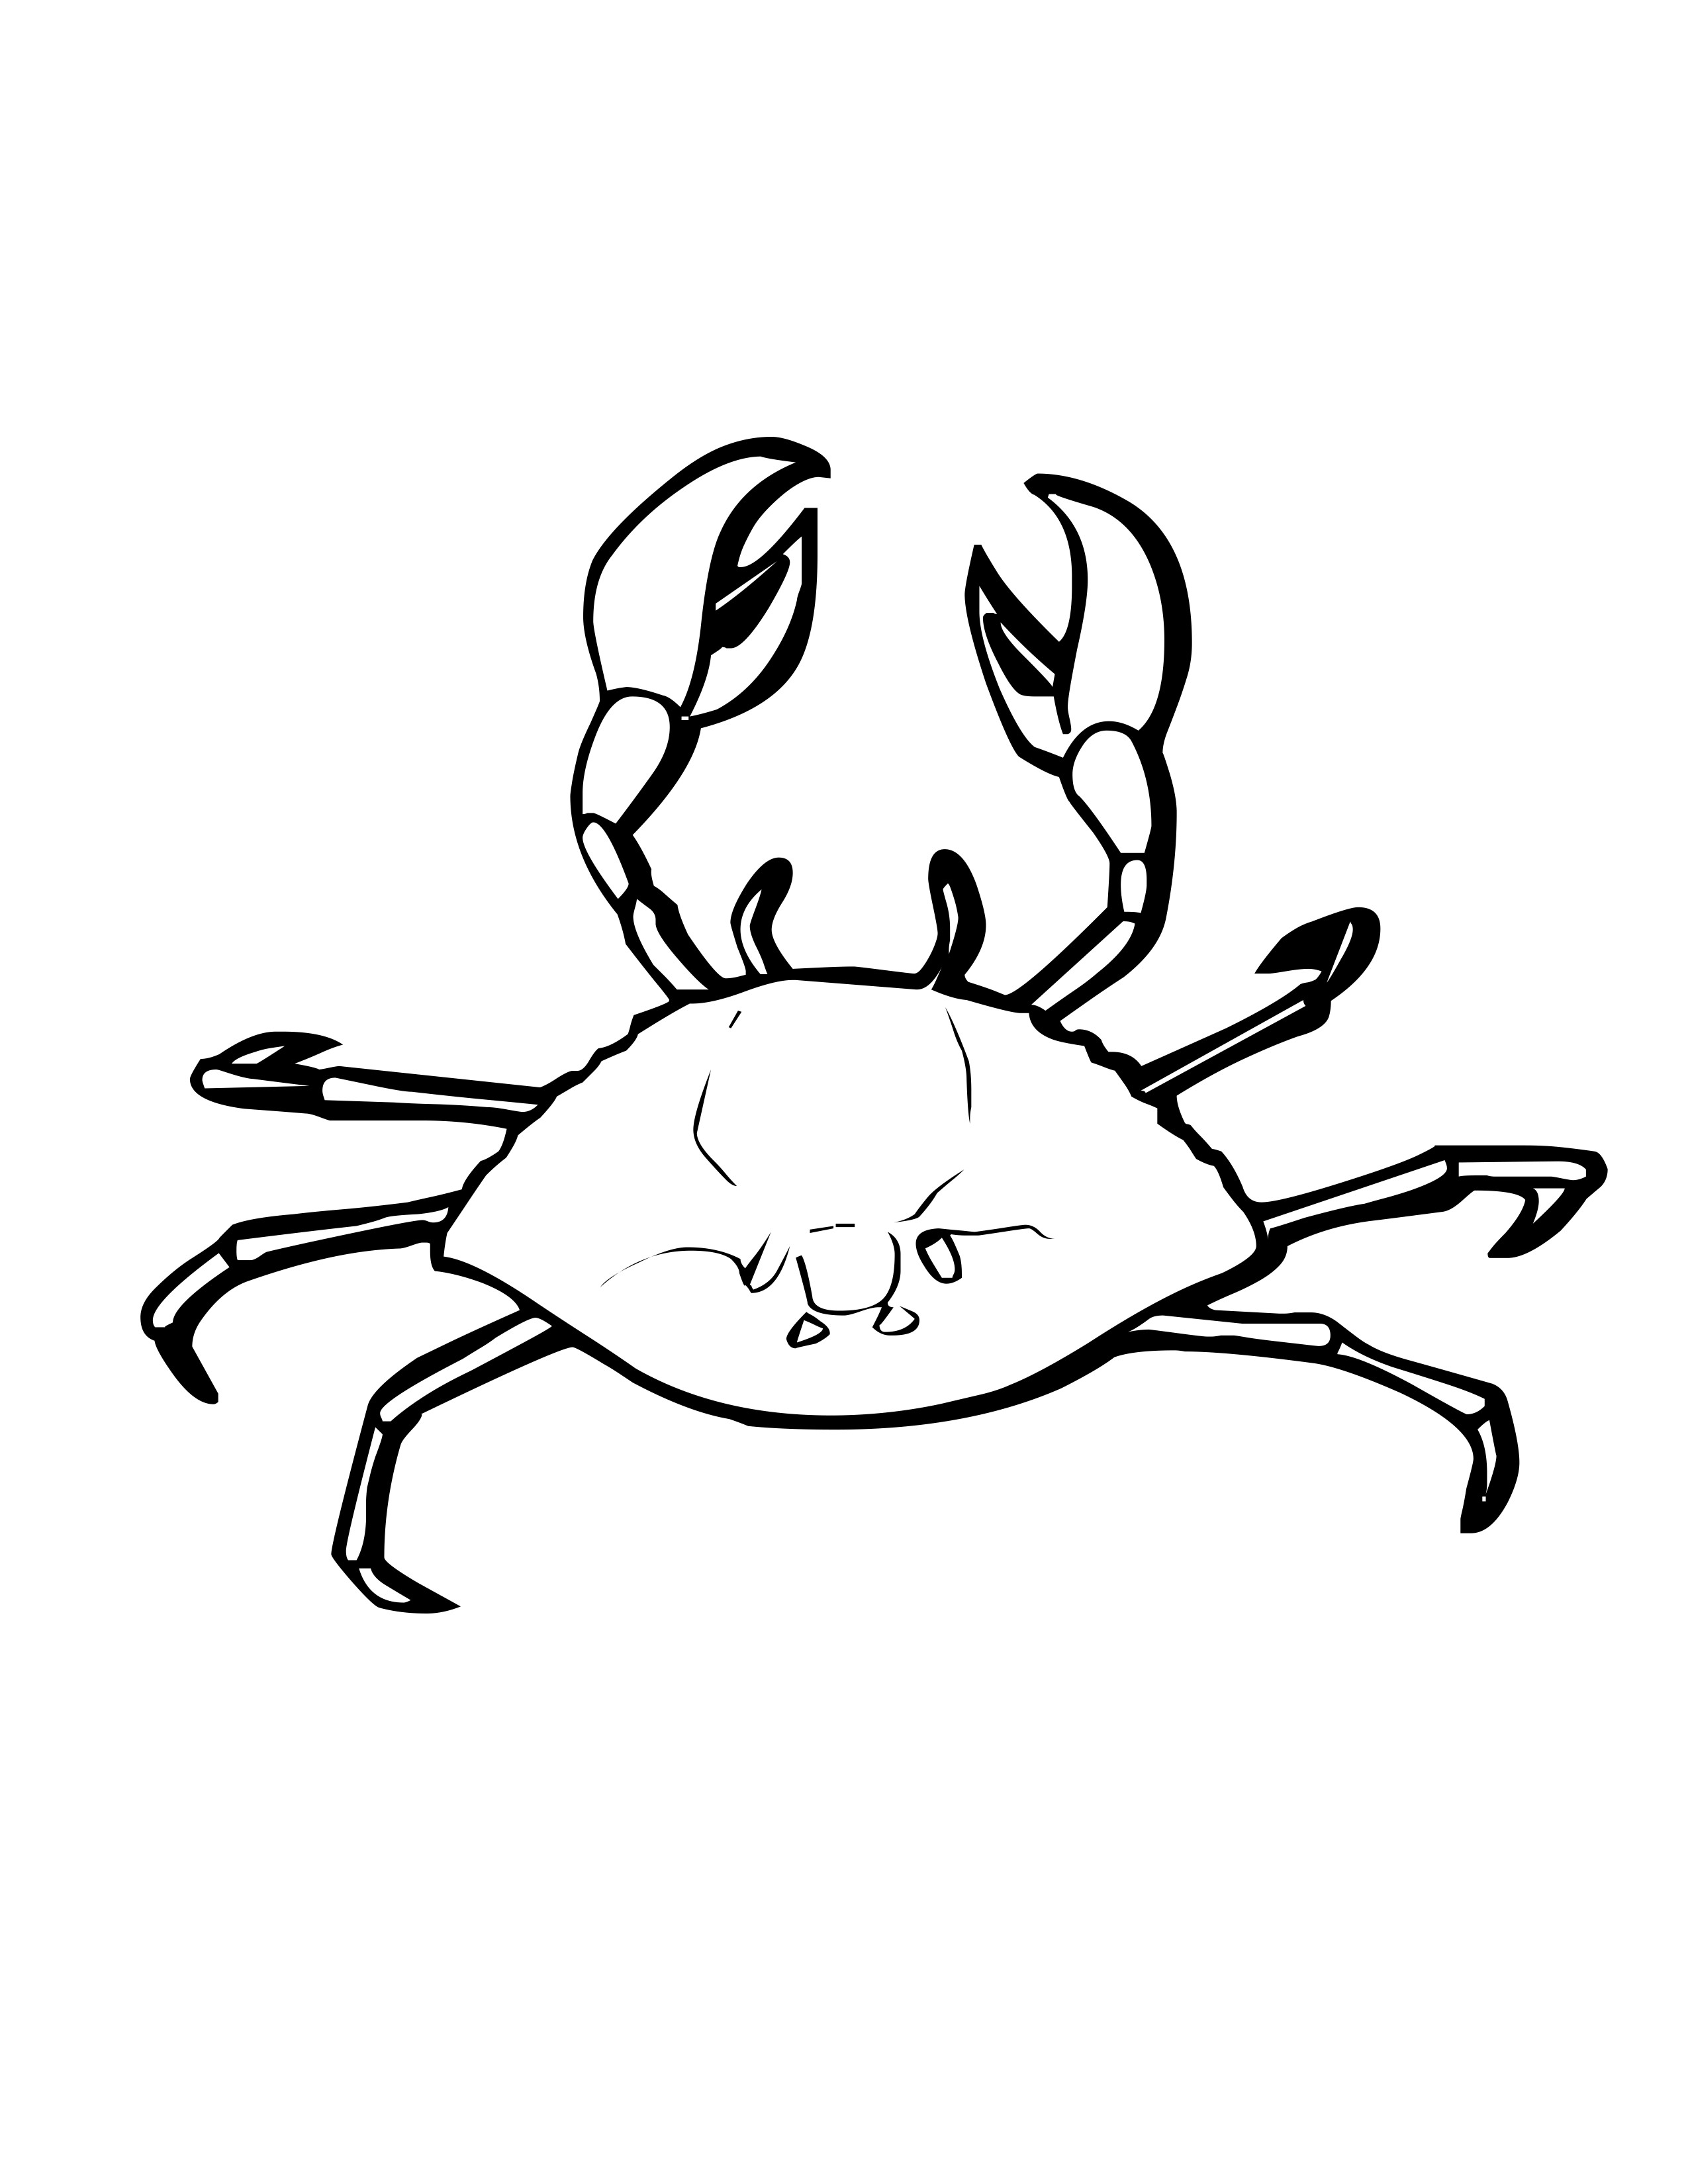 crab coloring pages free free printable crab coloring pages for kids animal place free crab pages coloring